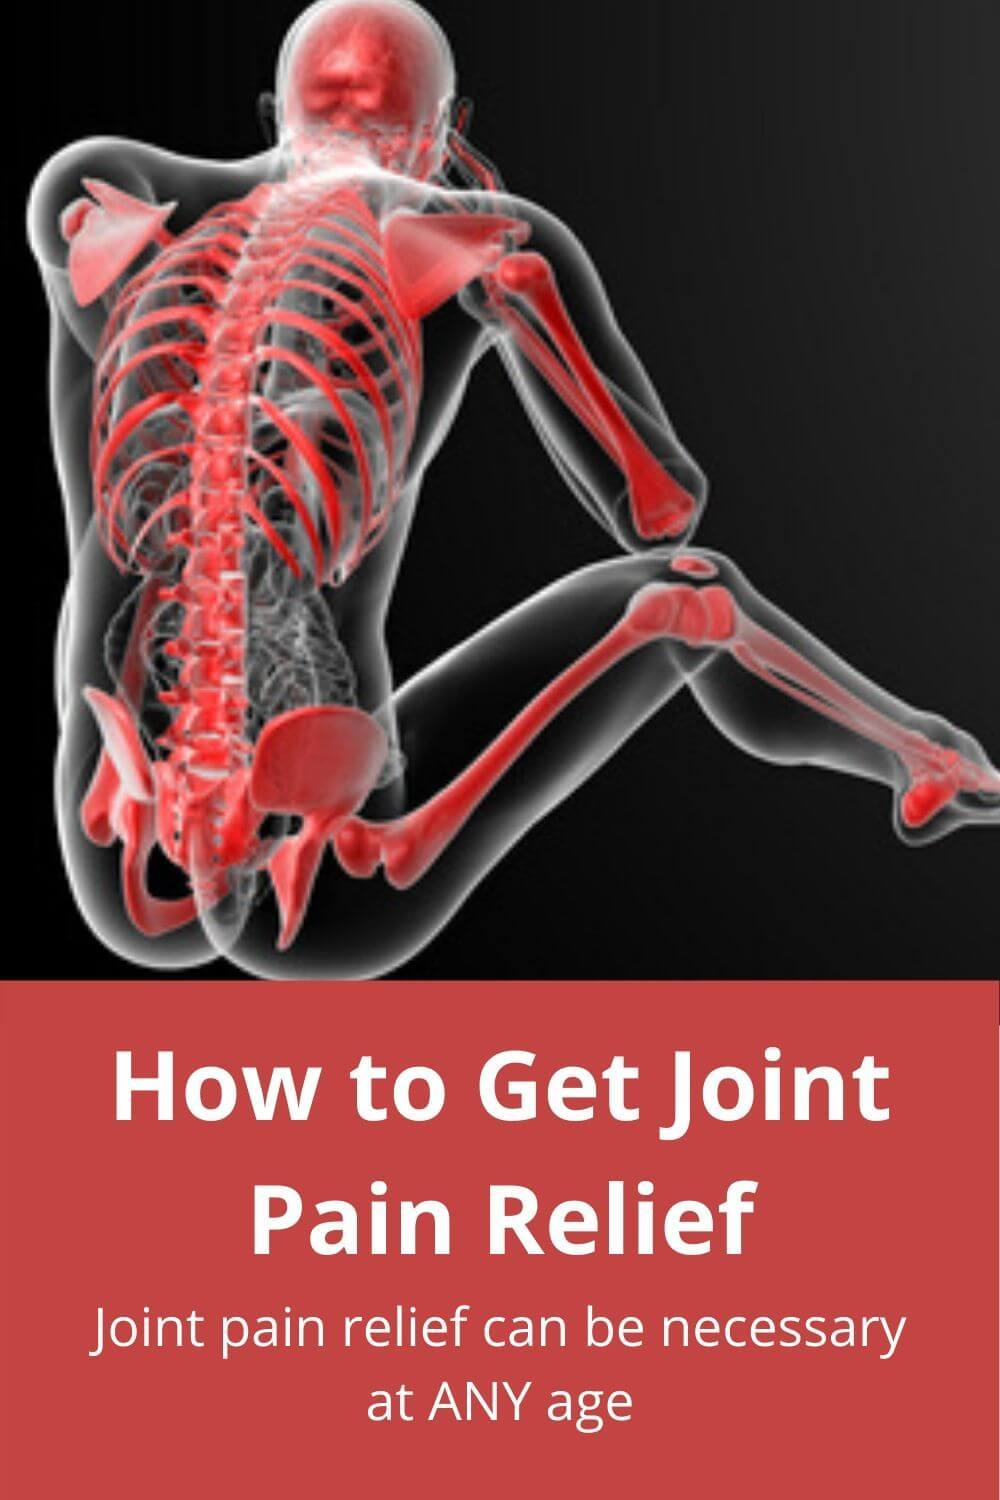 how to get joint pain relief